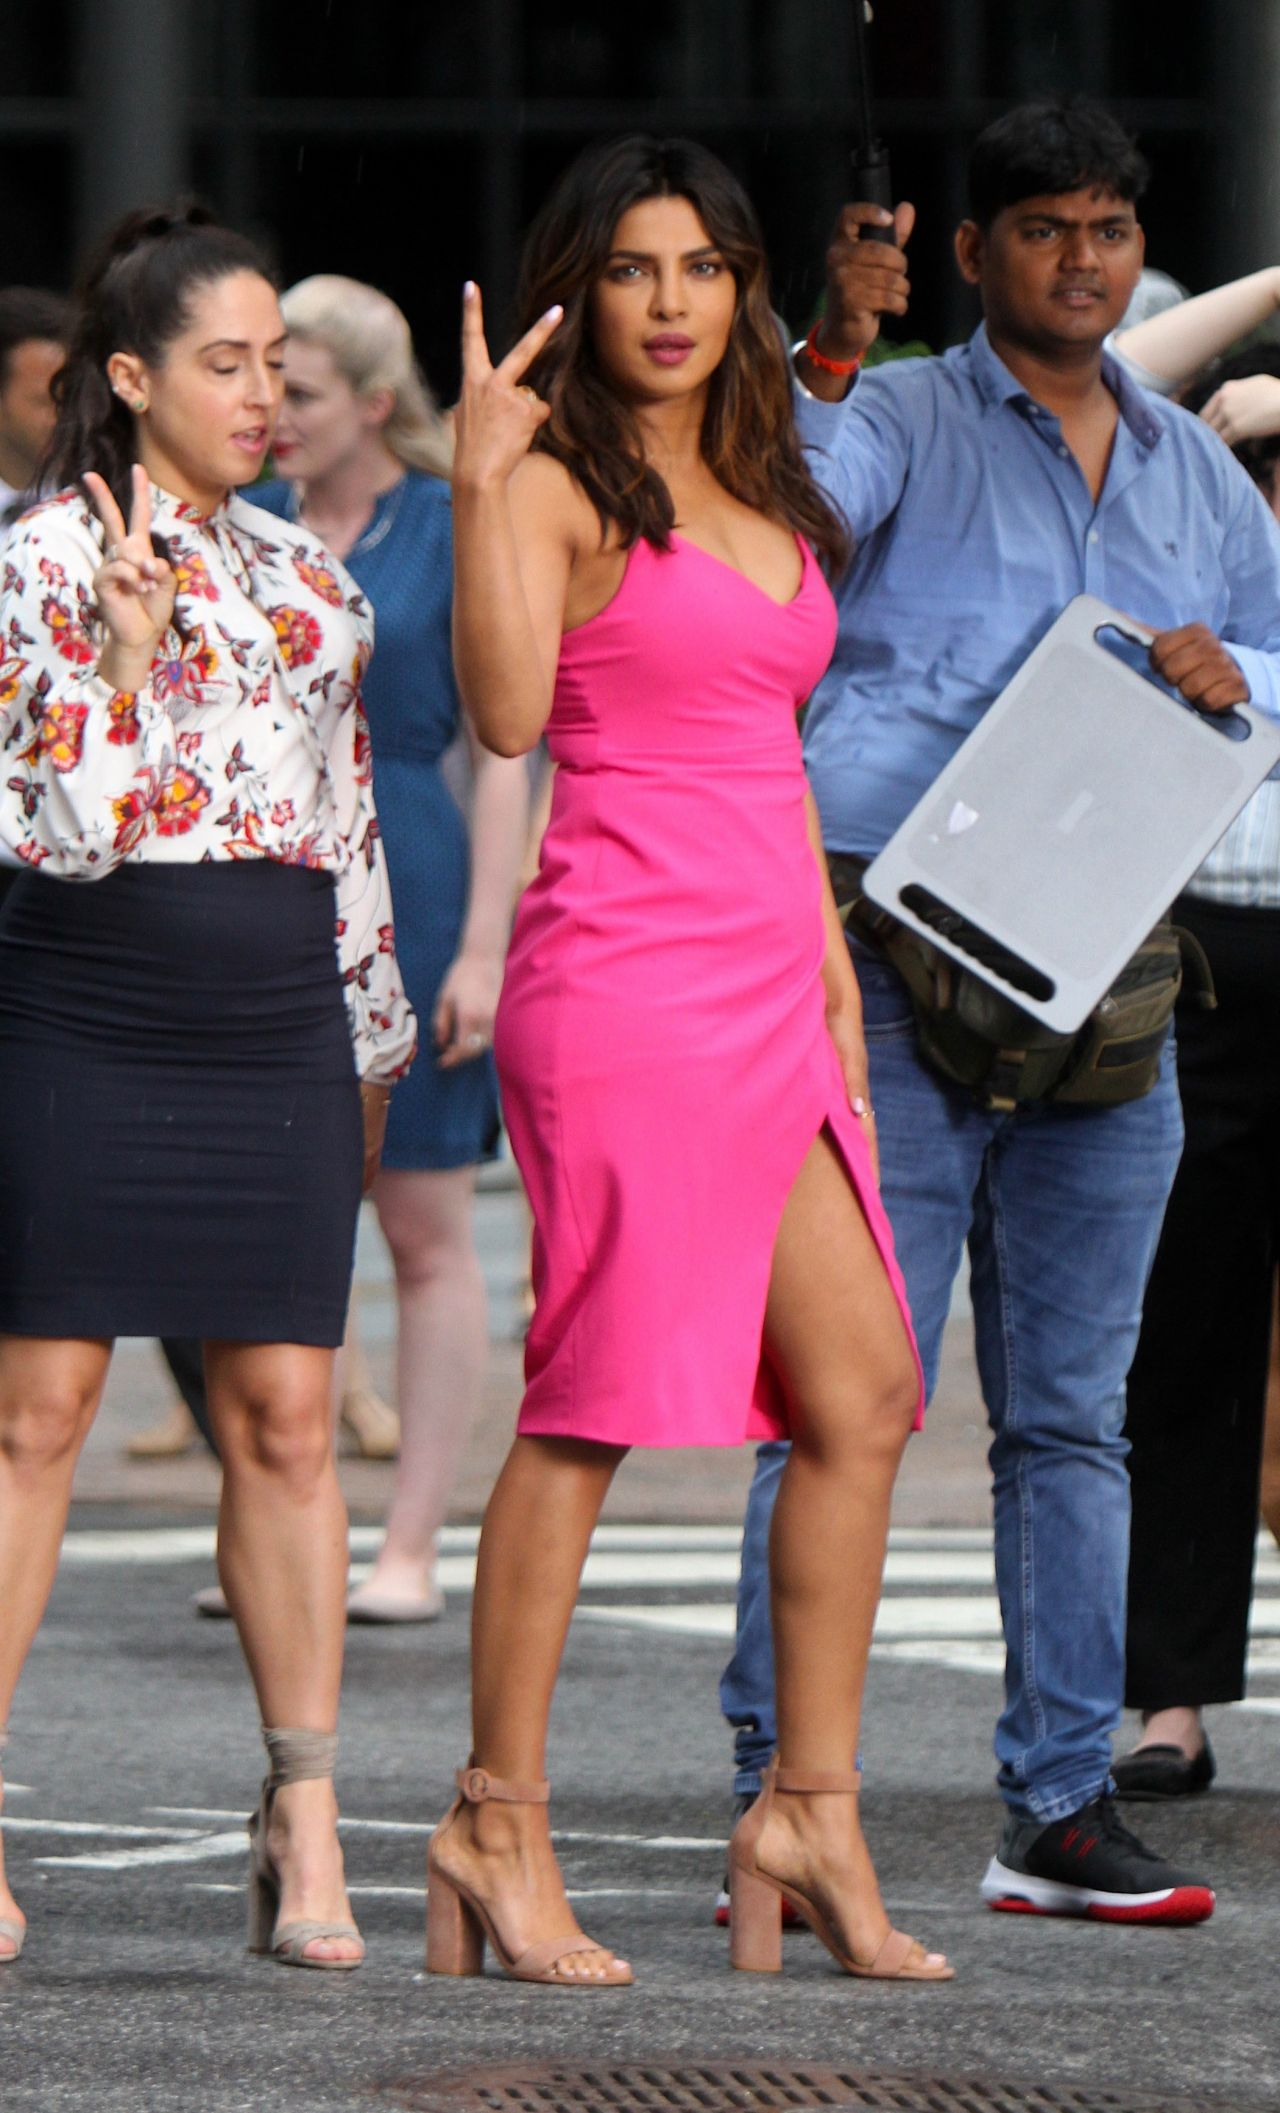 https://celebmafia.com/wp-content/uploads/2018/07/priyanka-chopra-liam-hemsworth-rebel-wilson-adam-devine-and-betty-gilpin-filming-a-dance-scene-for-isn-t-it-romantic-in-ny-6.jpg